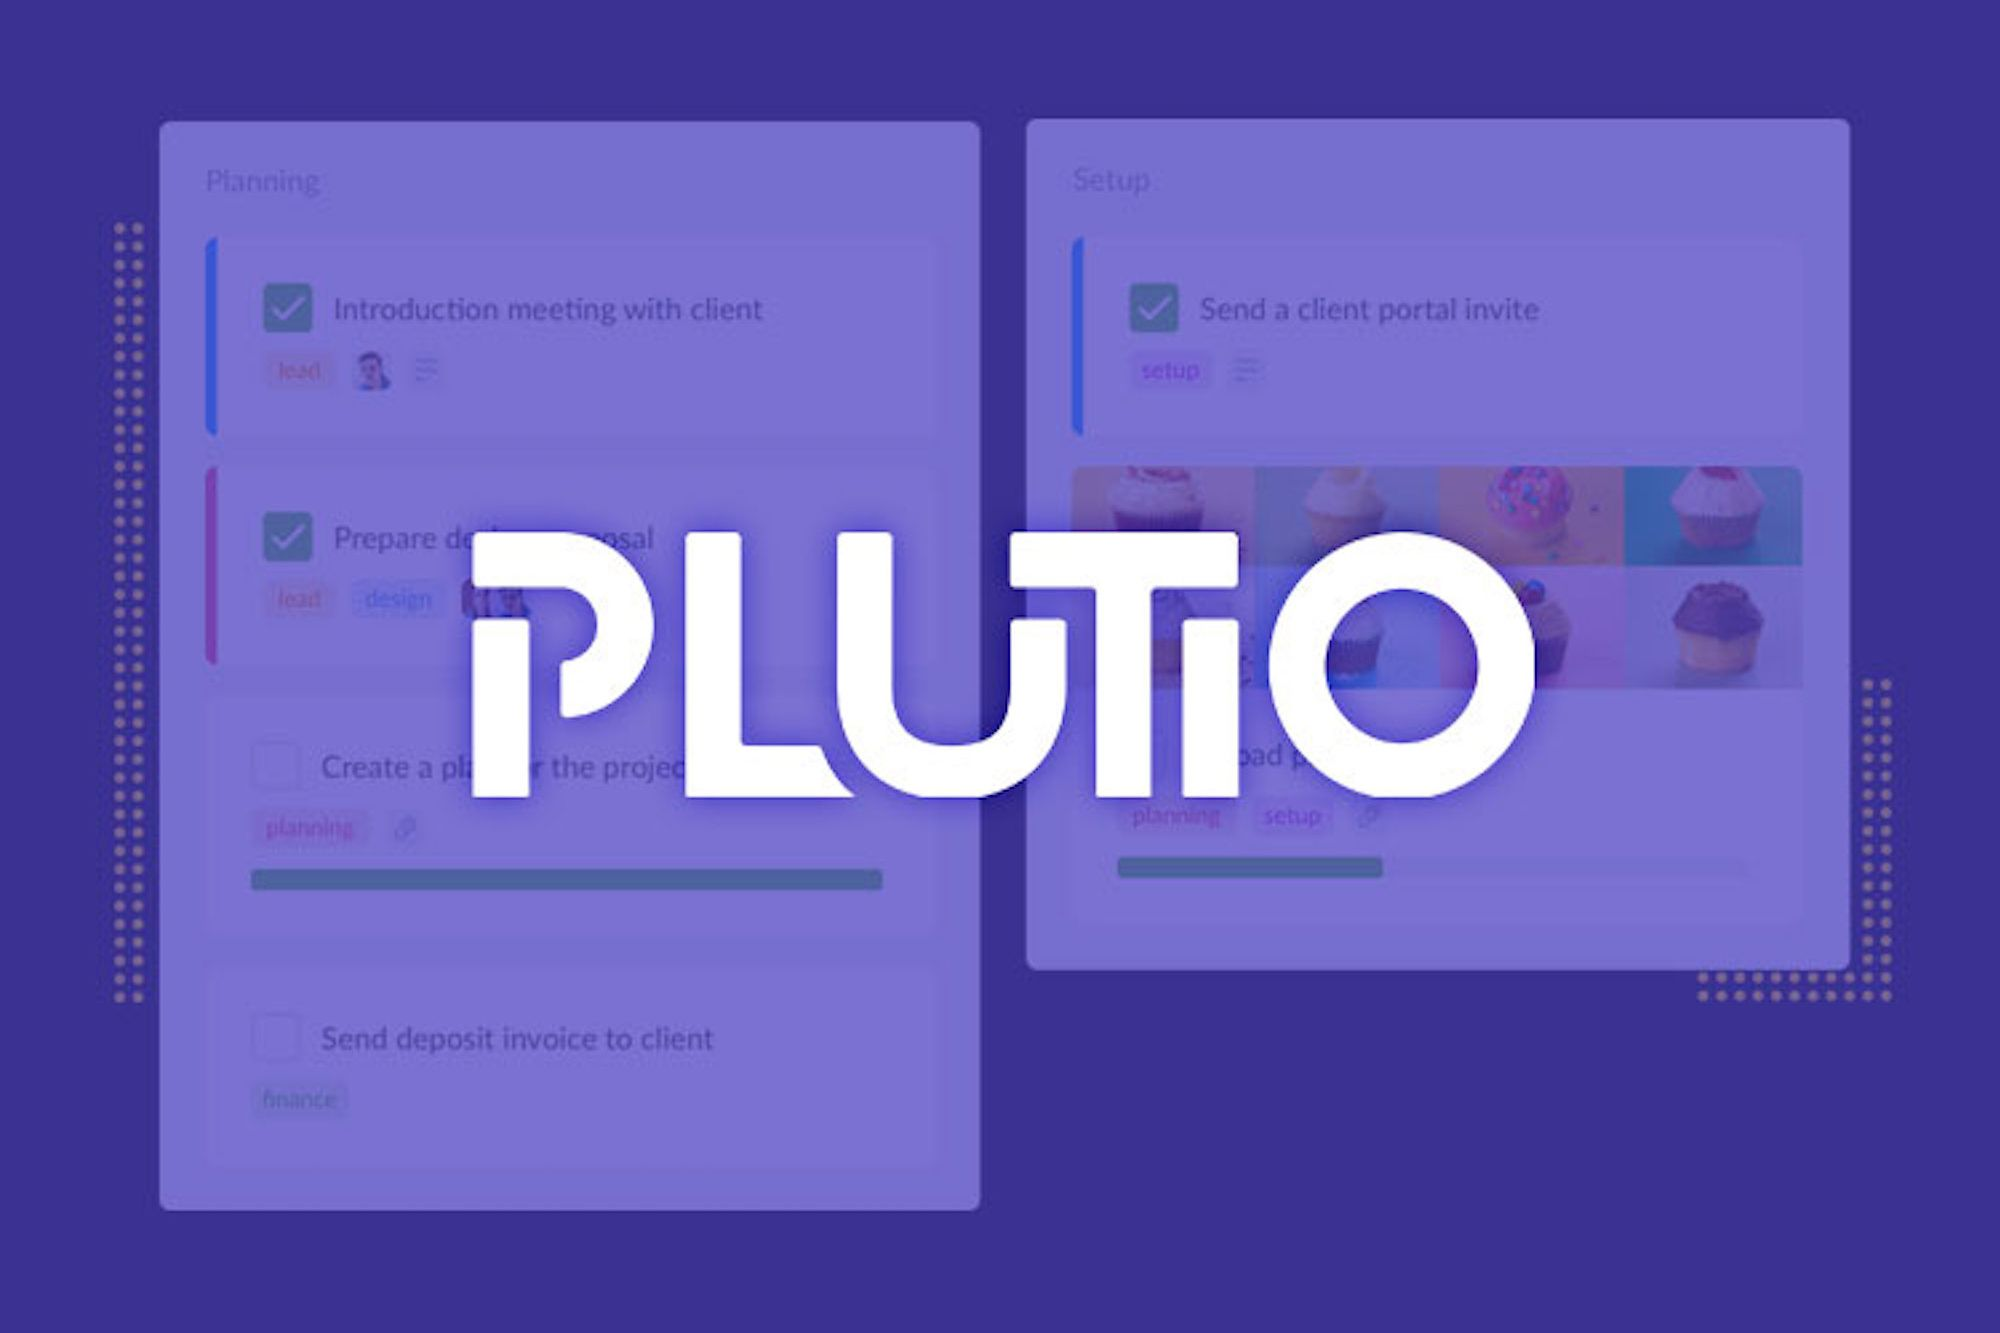 Plutio Helps Increase Productivity and Grow Your Business